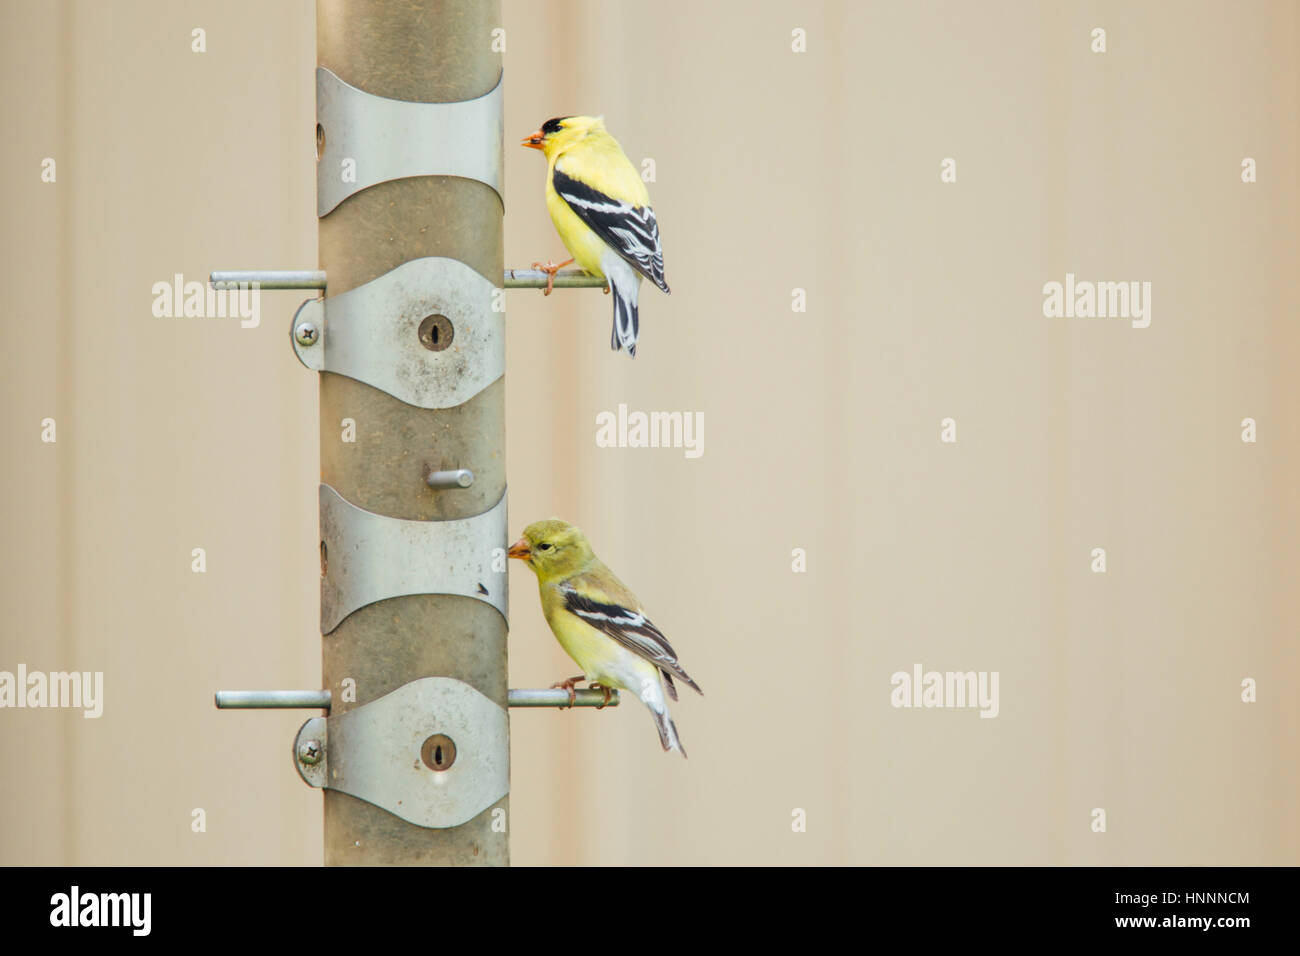 Gold finches perching on pole - Stock Image